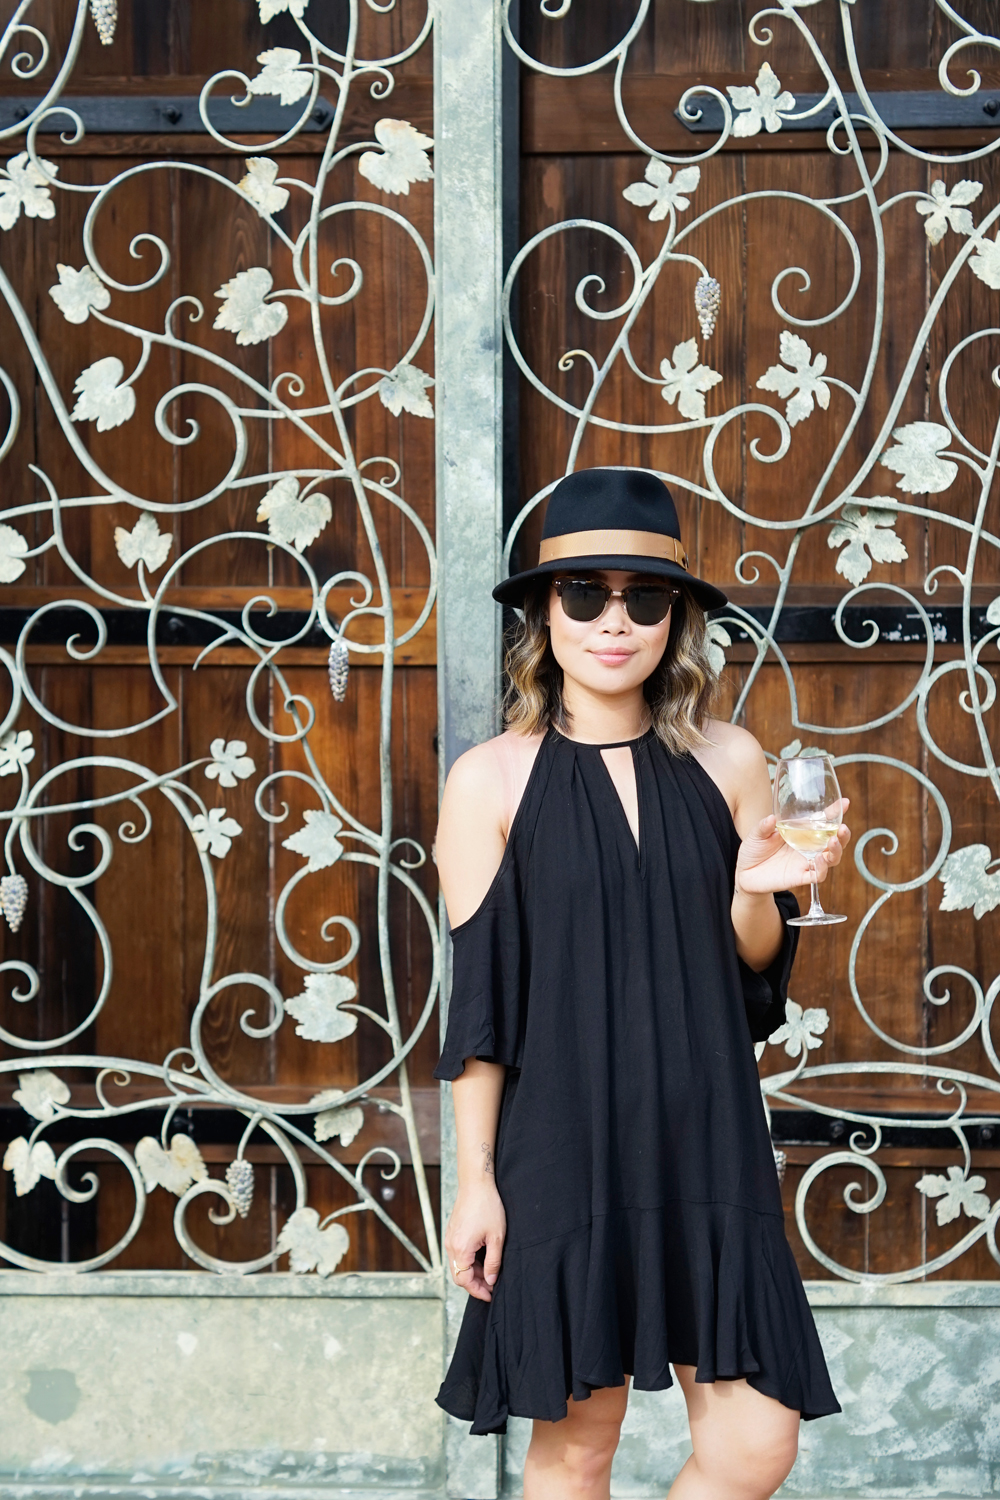 10winery-travel-style-fashion-goorinbros-azalea